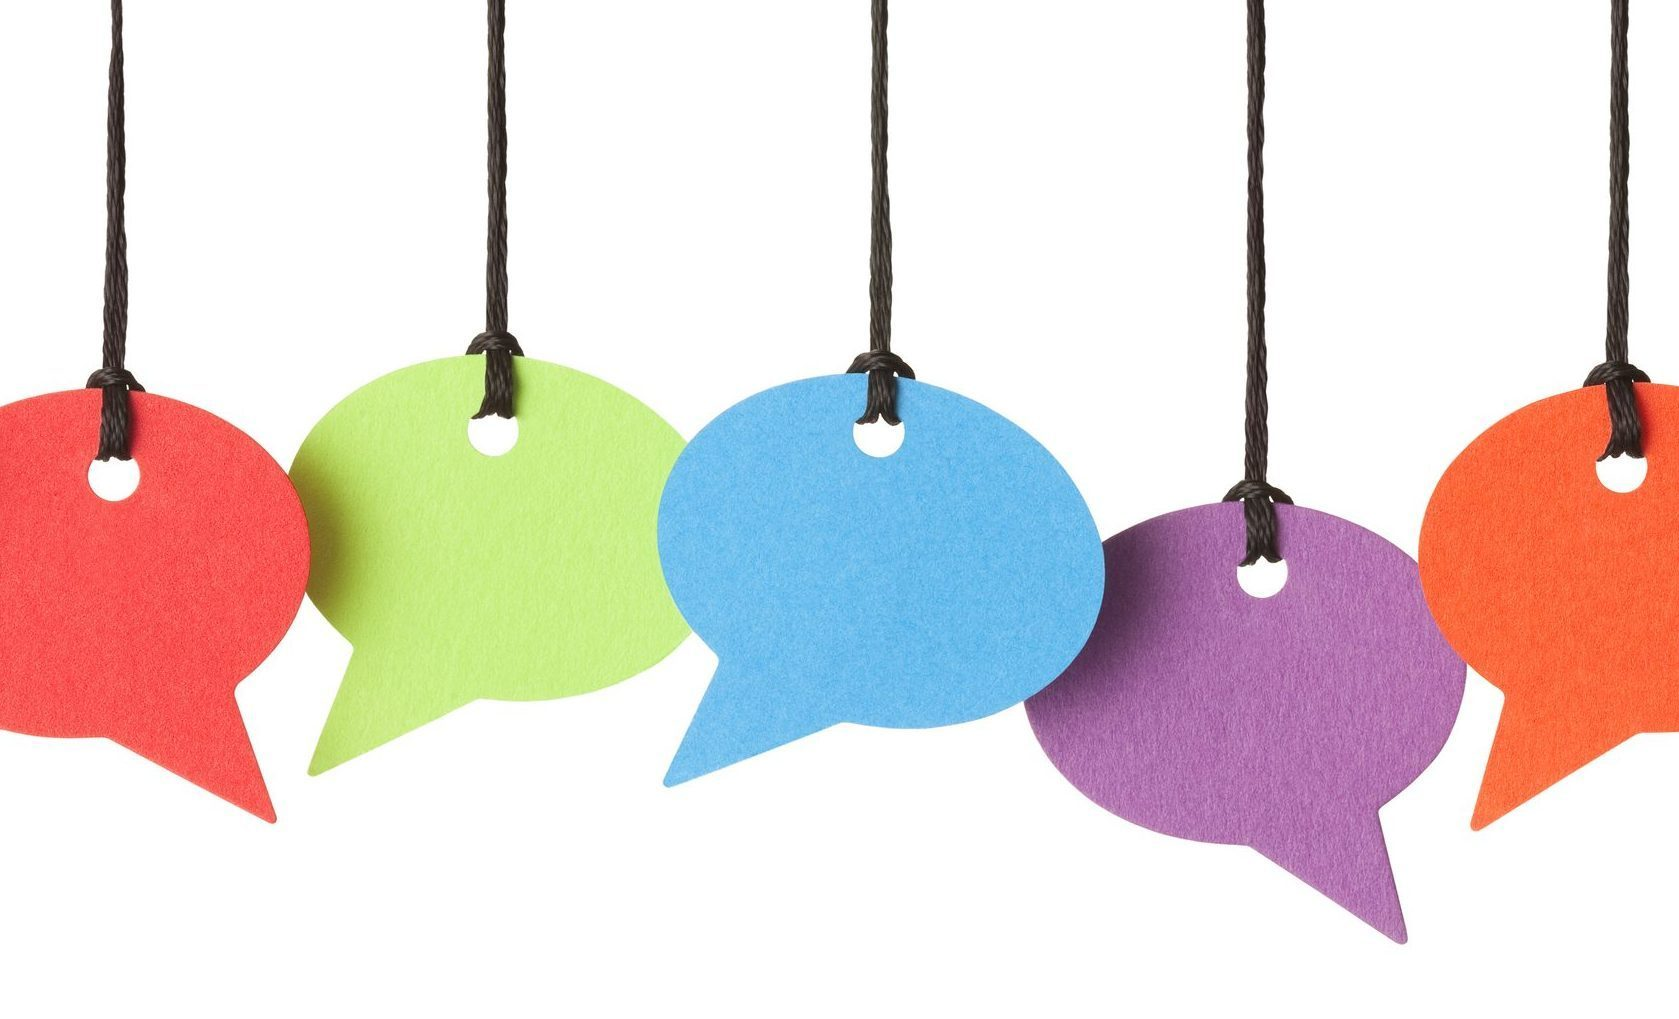 Six blank speech bubbles hanging from thread,